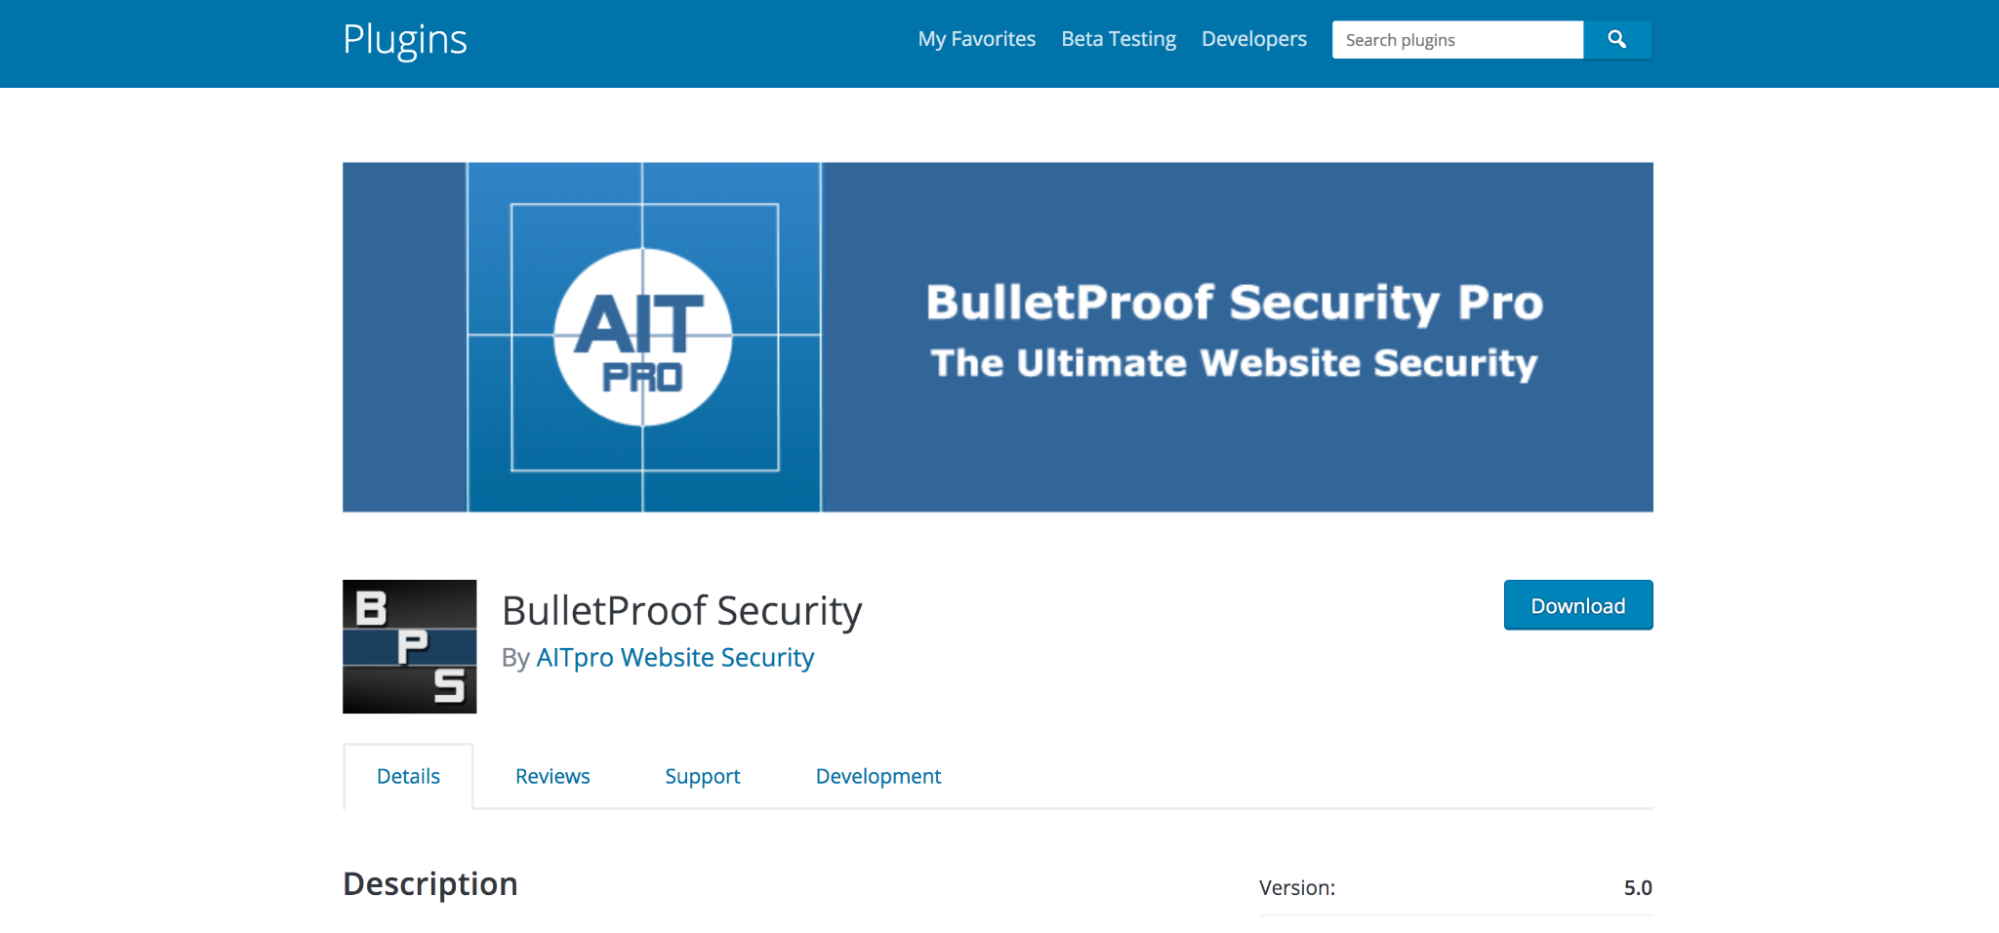 BulletProof Security page in the WordPress repository